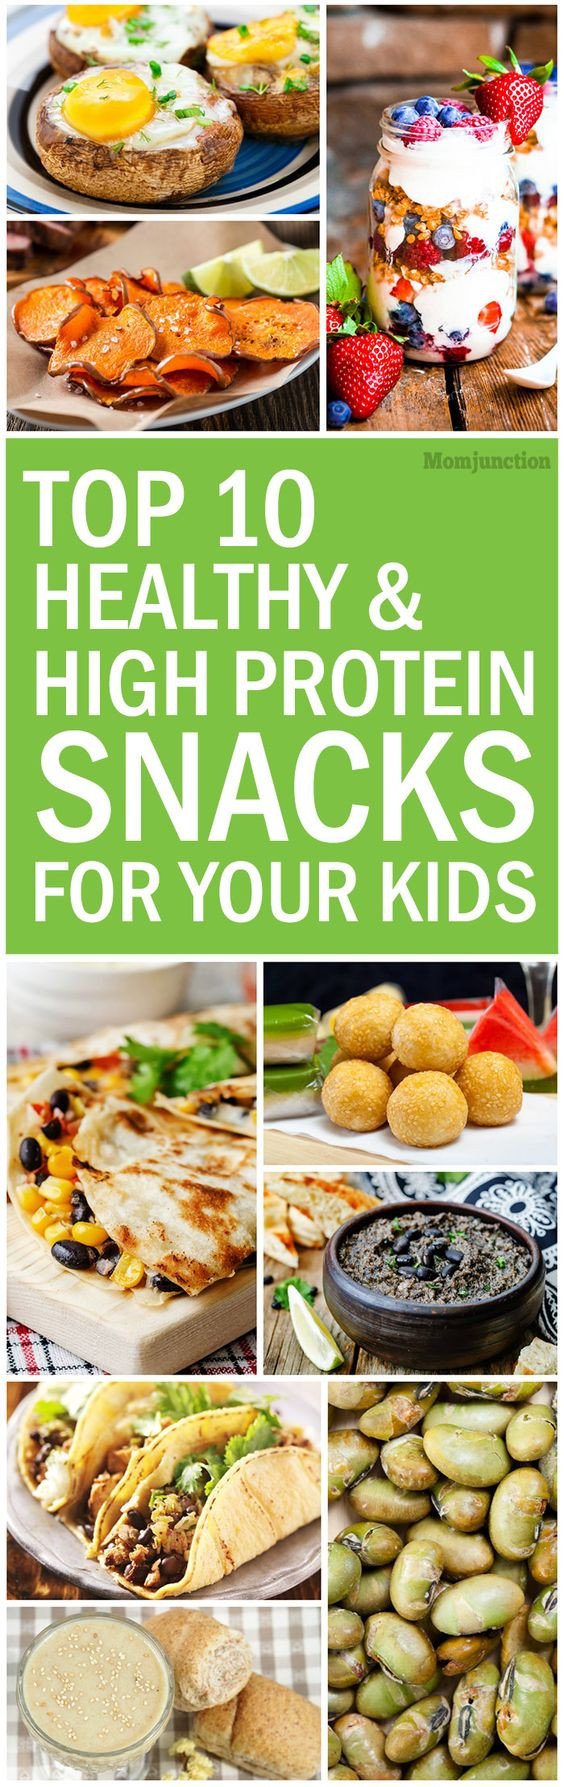 Top Ten Healthy Snacks  Top 10 Healthy And High Protein Snacks For Kids